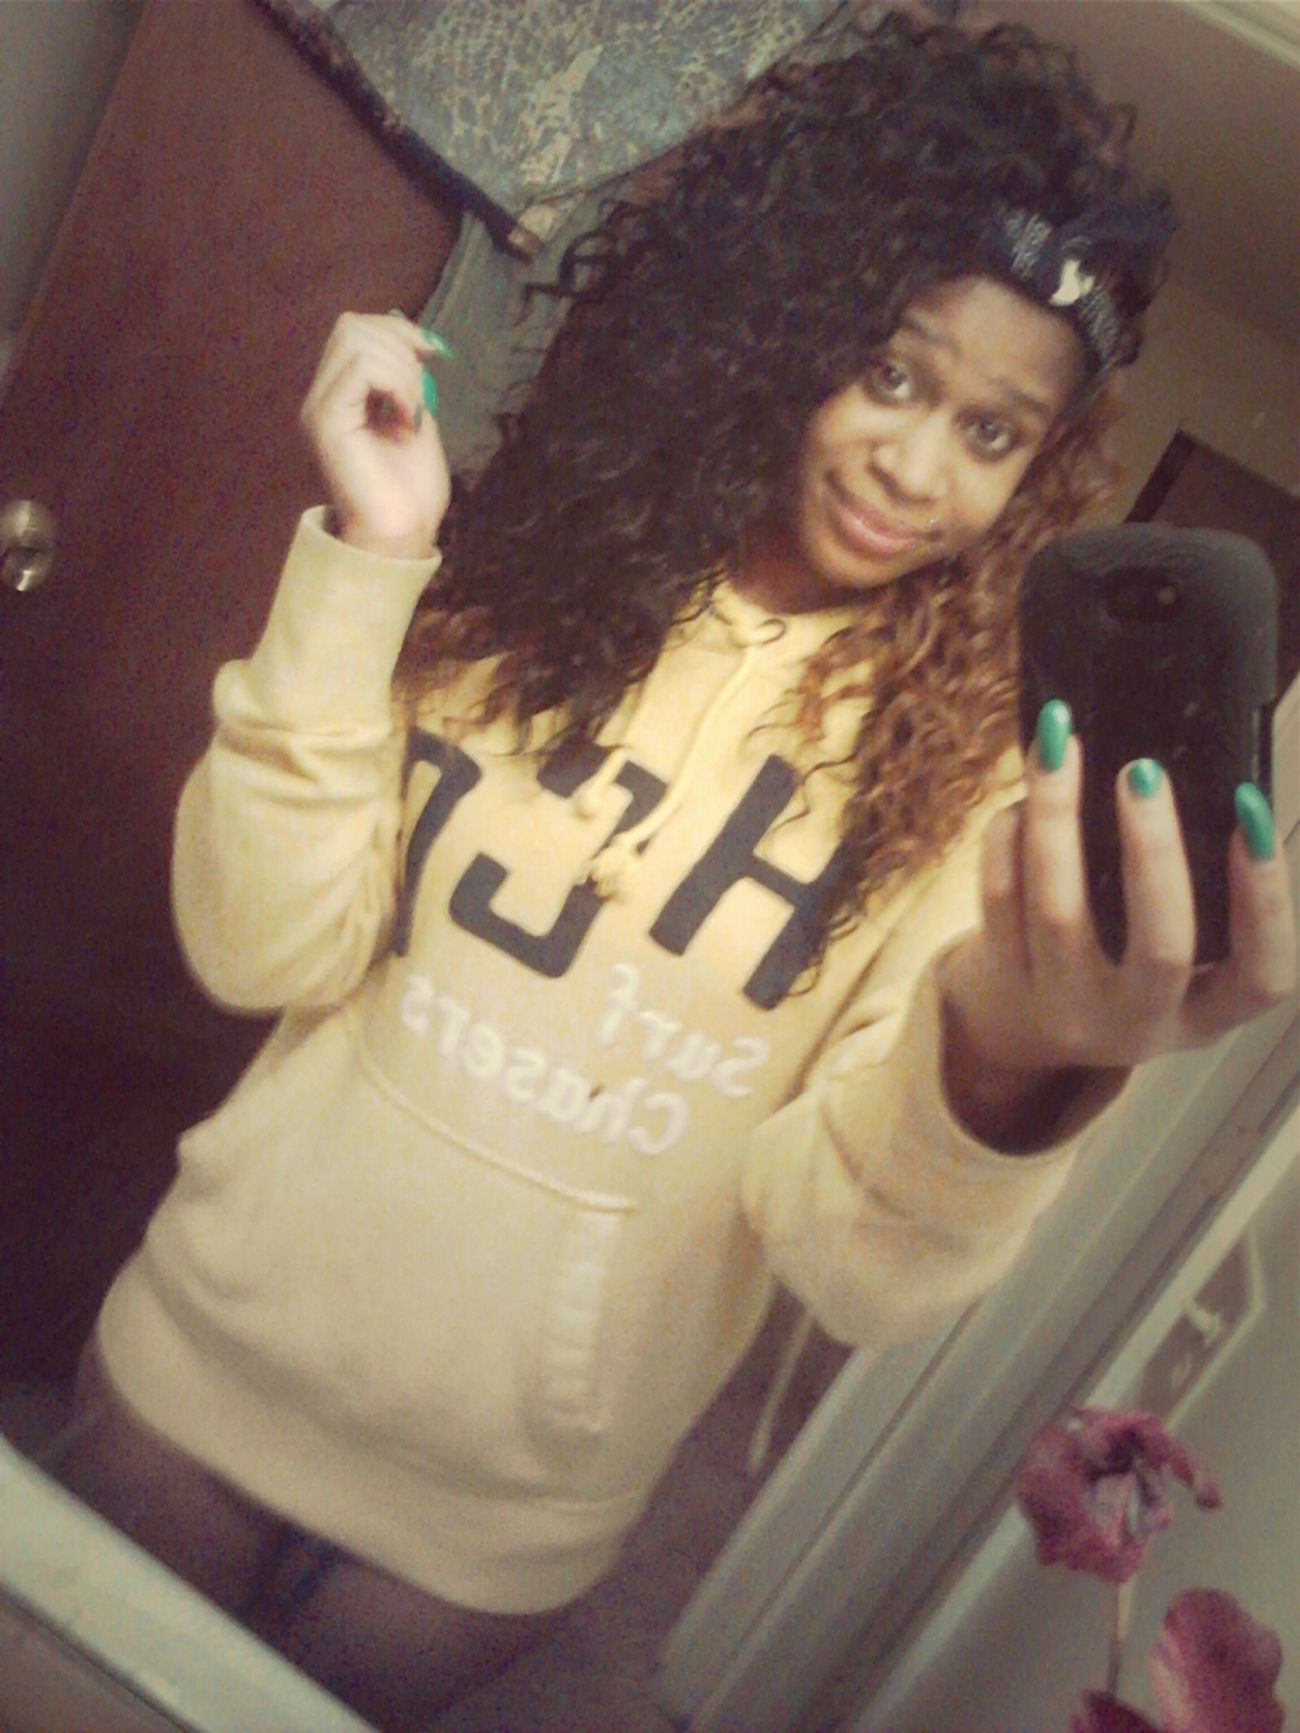 I be sleeping in his hoodie. >